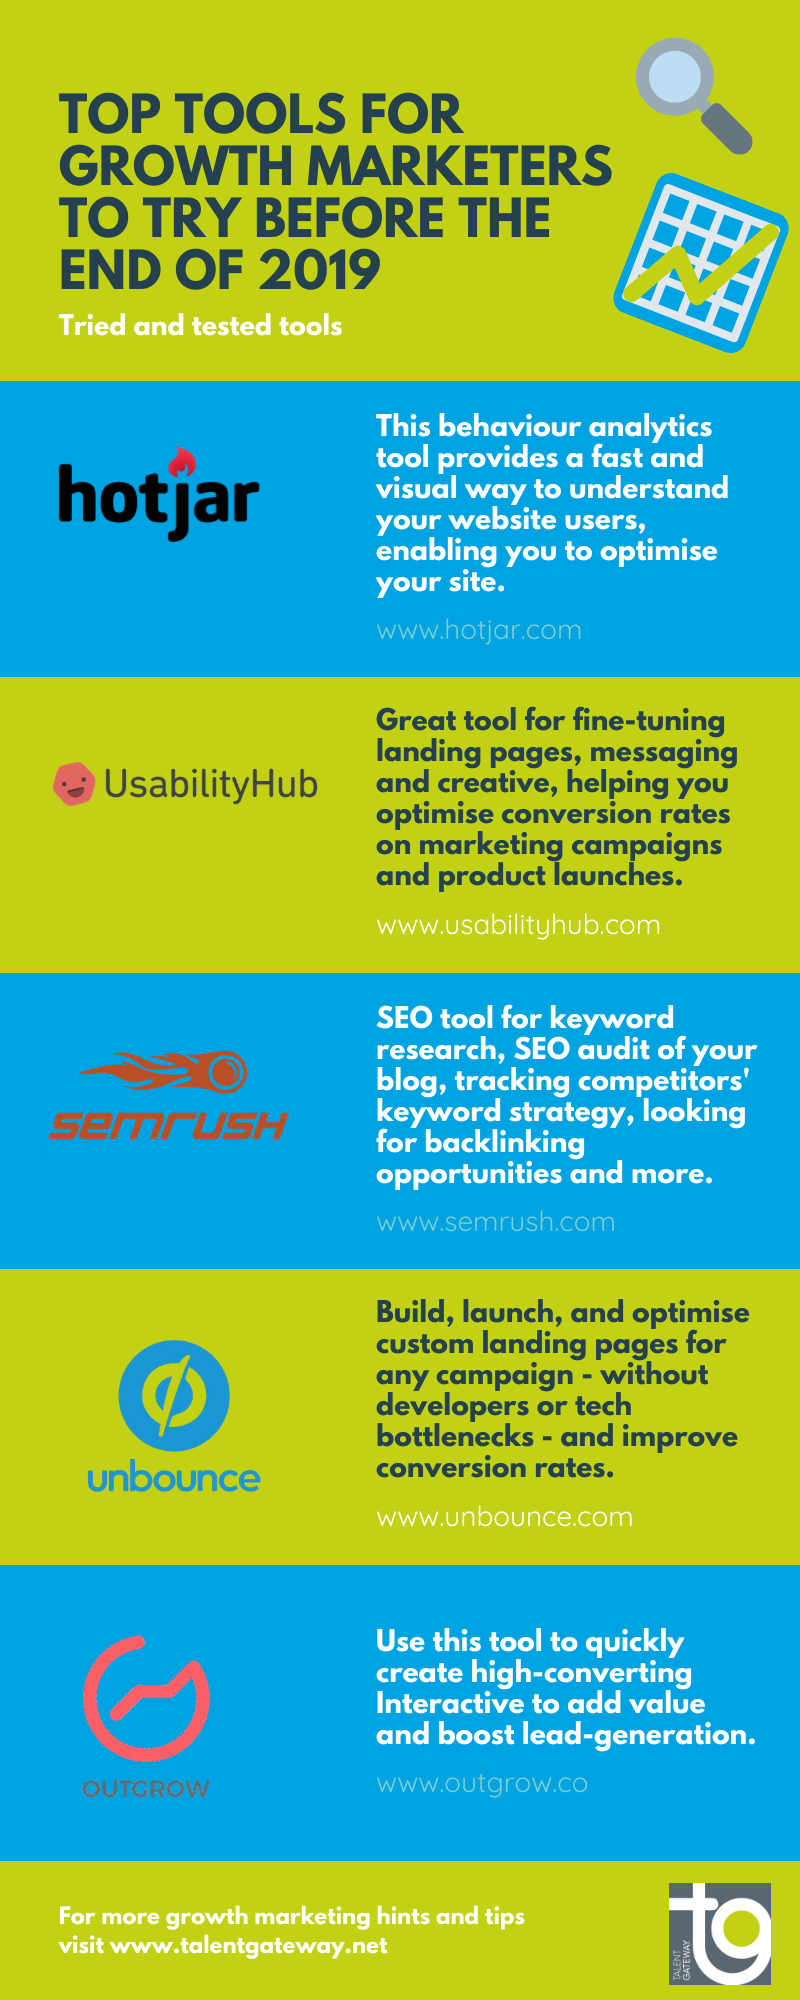 An infographic listing some of the best marketing tools to try including hotjar, usabilityhub, semrush, unbounce and outgrow.